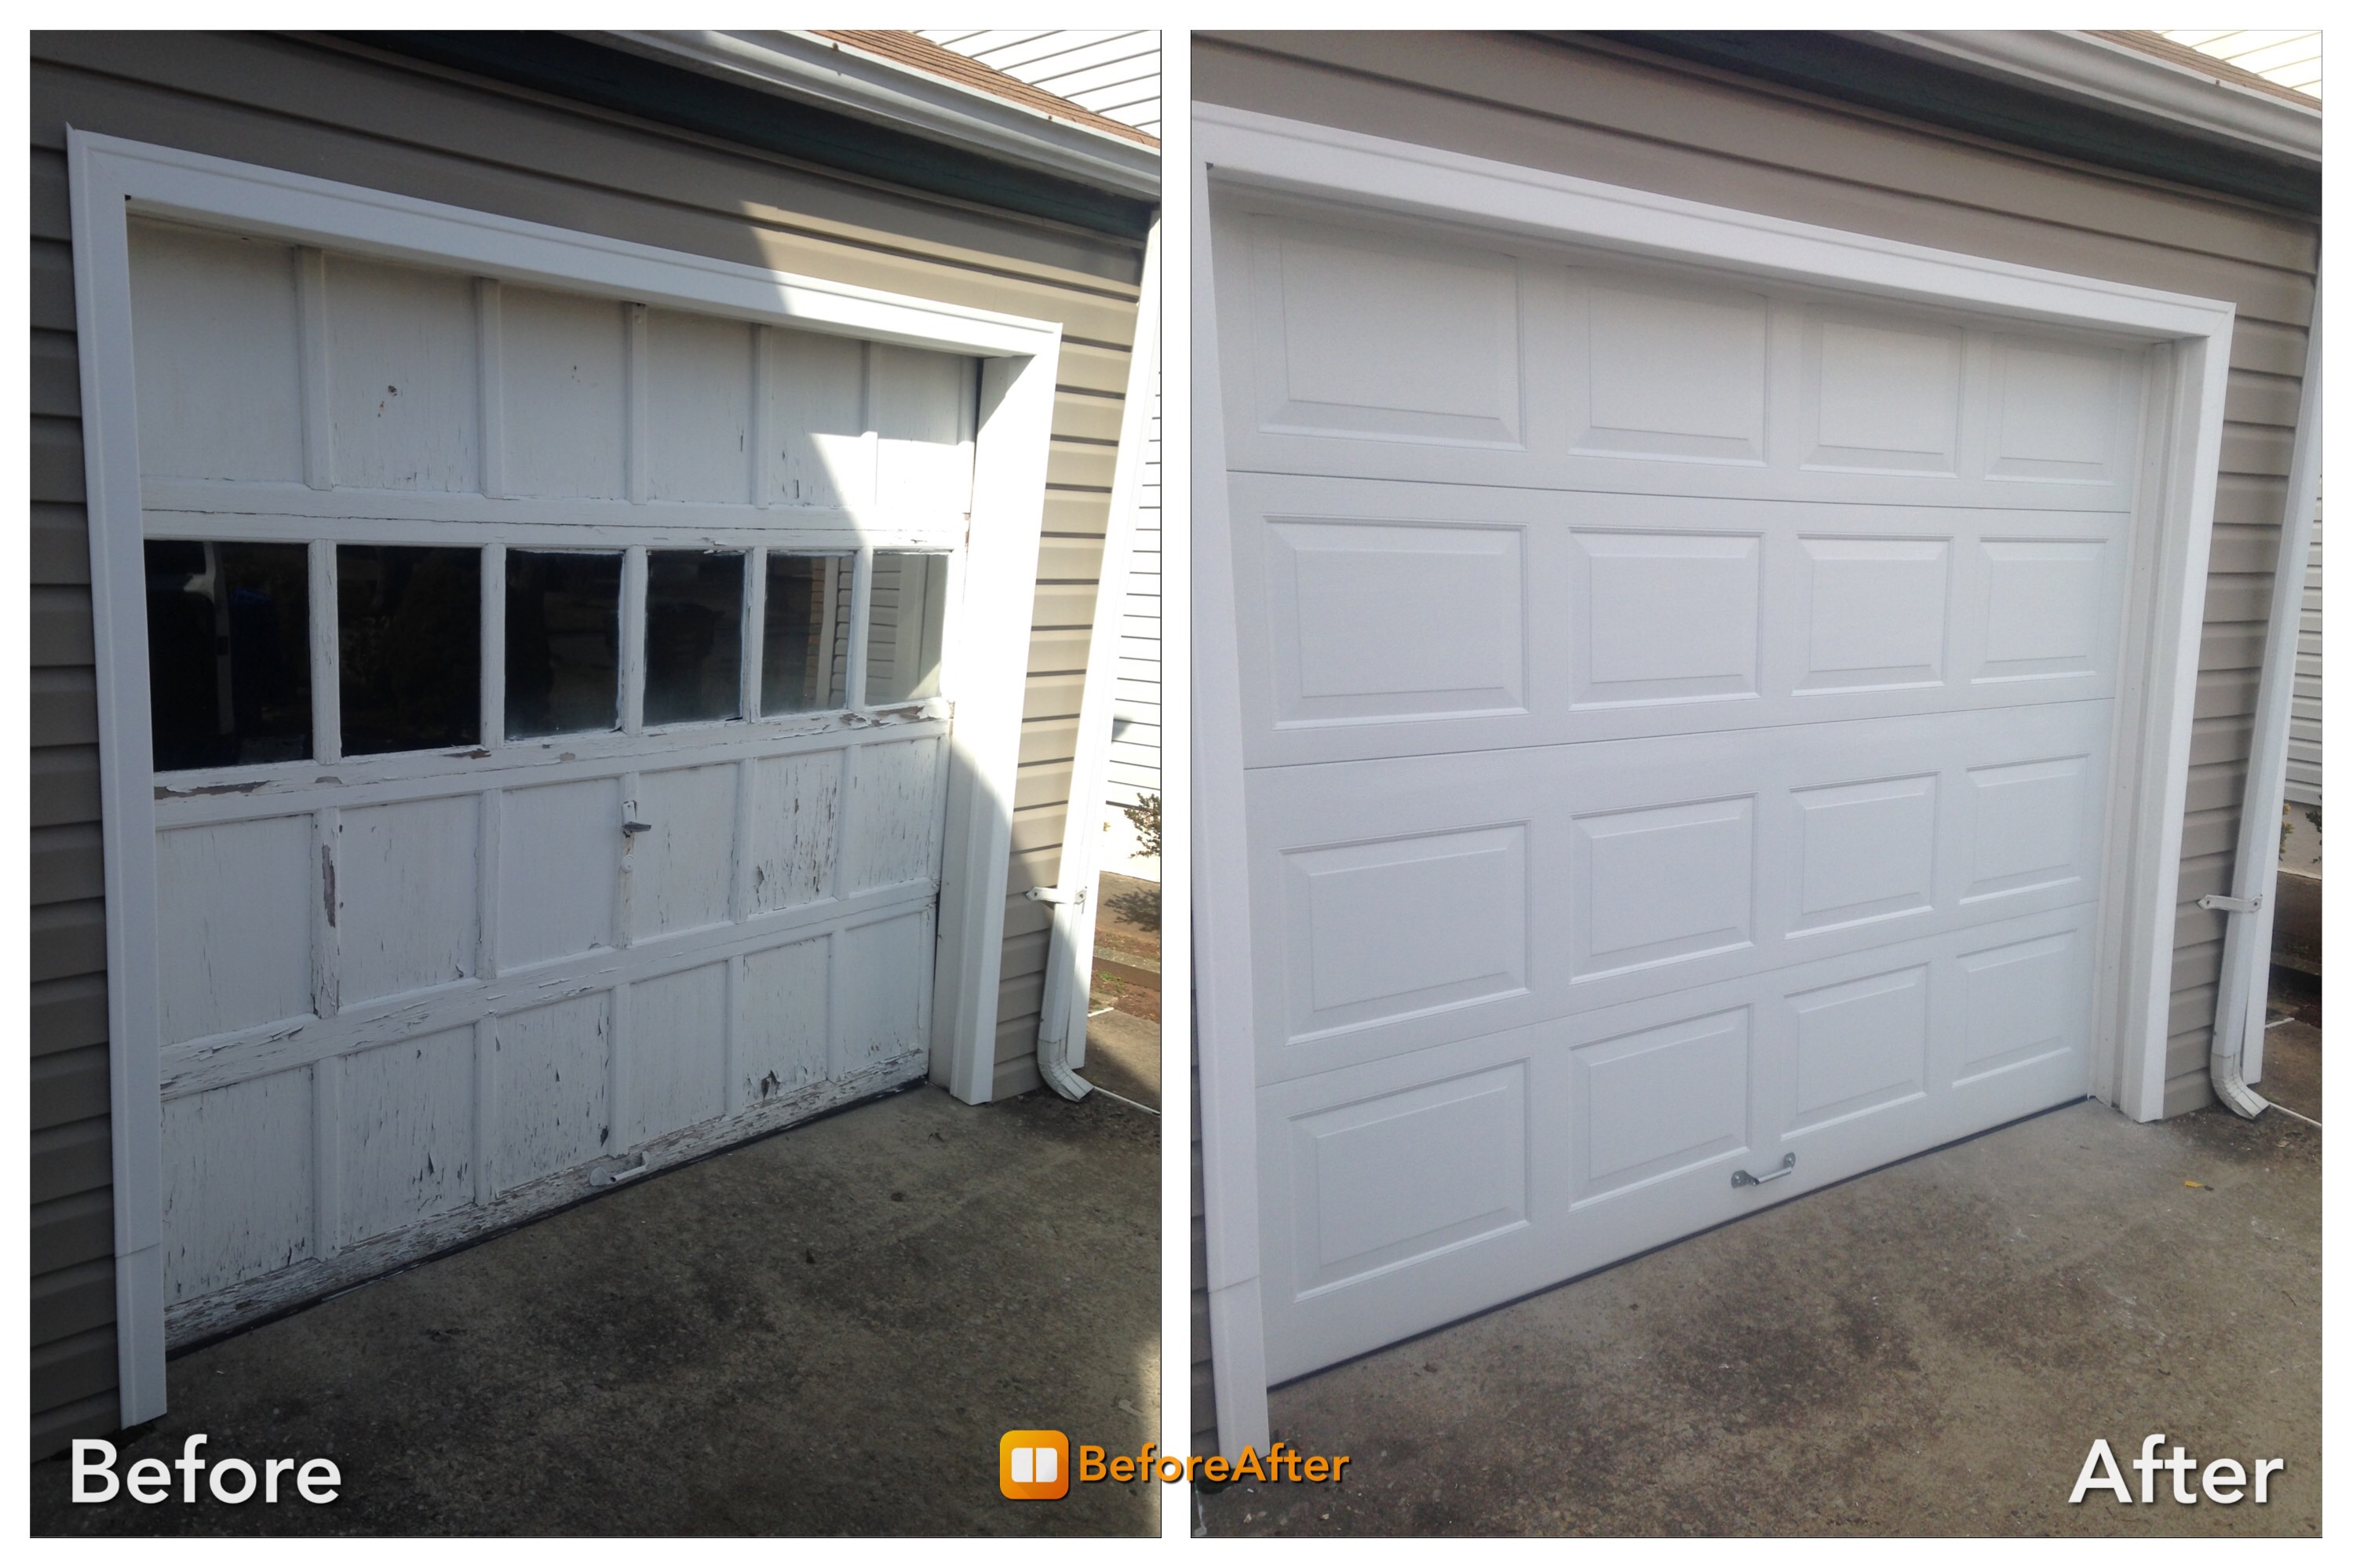 Lone Star Garage Door Repair 2230 Strahle St Philadelphia Pa 19152